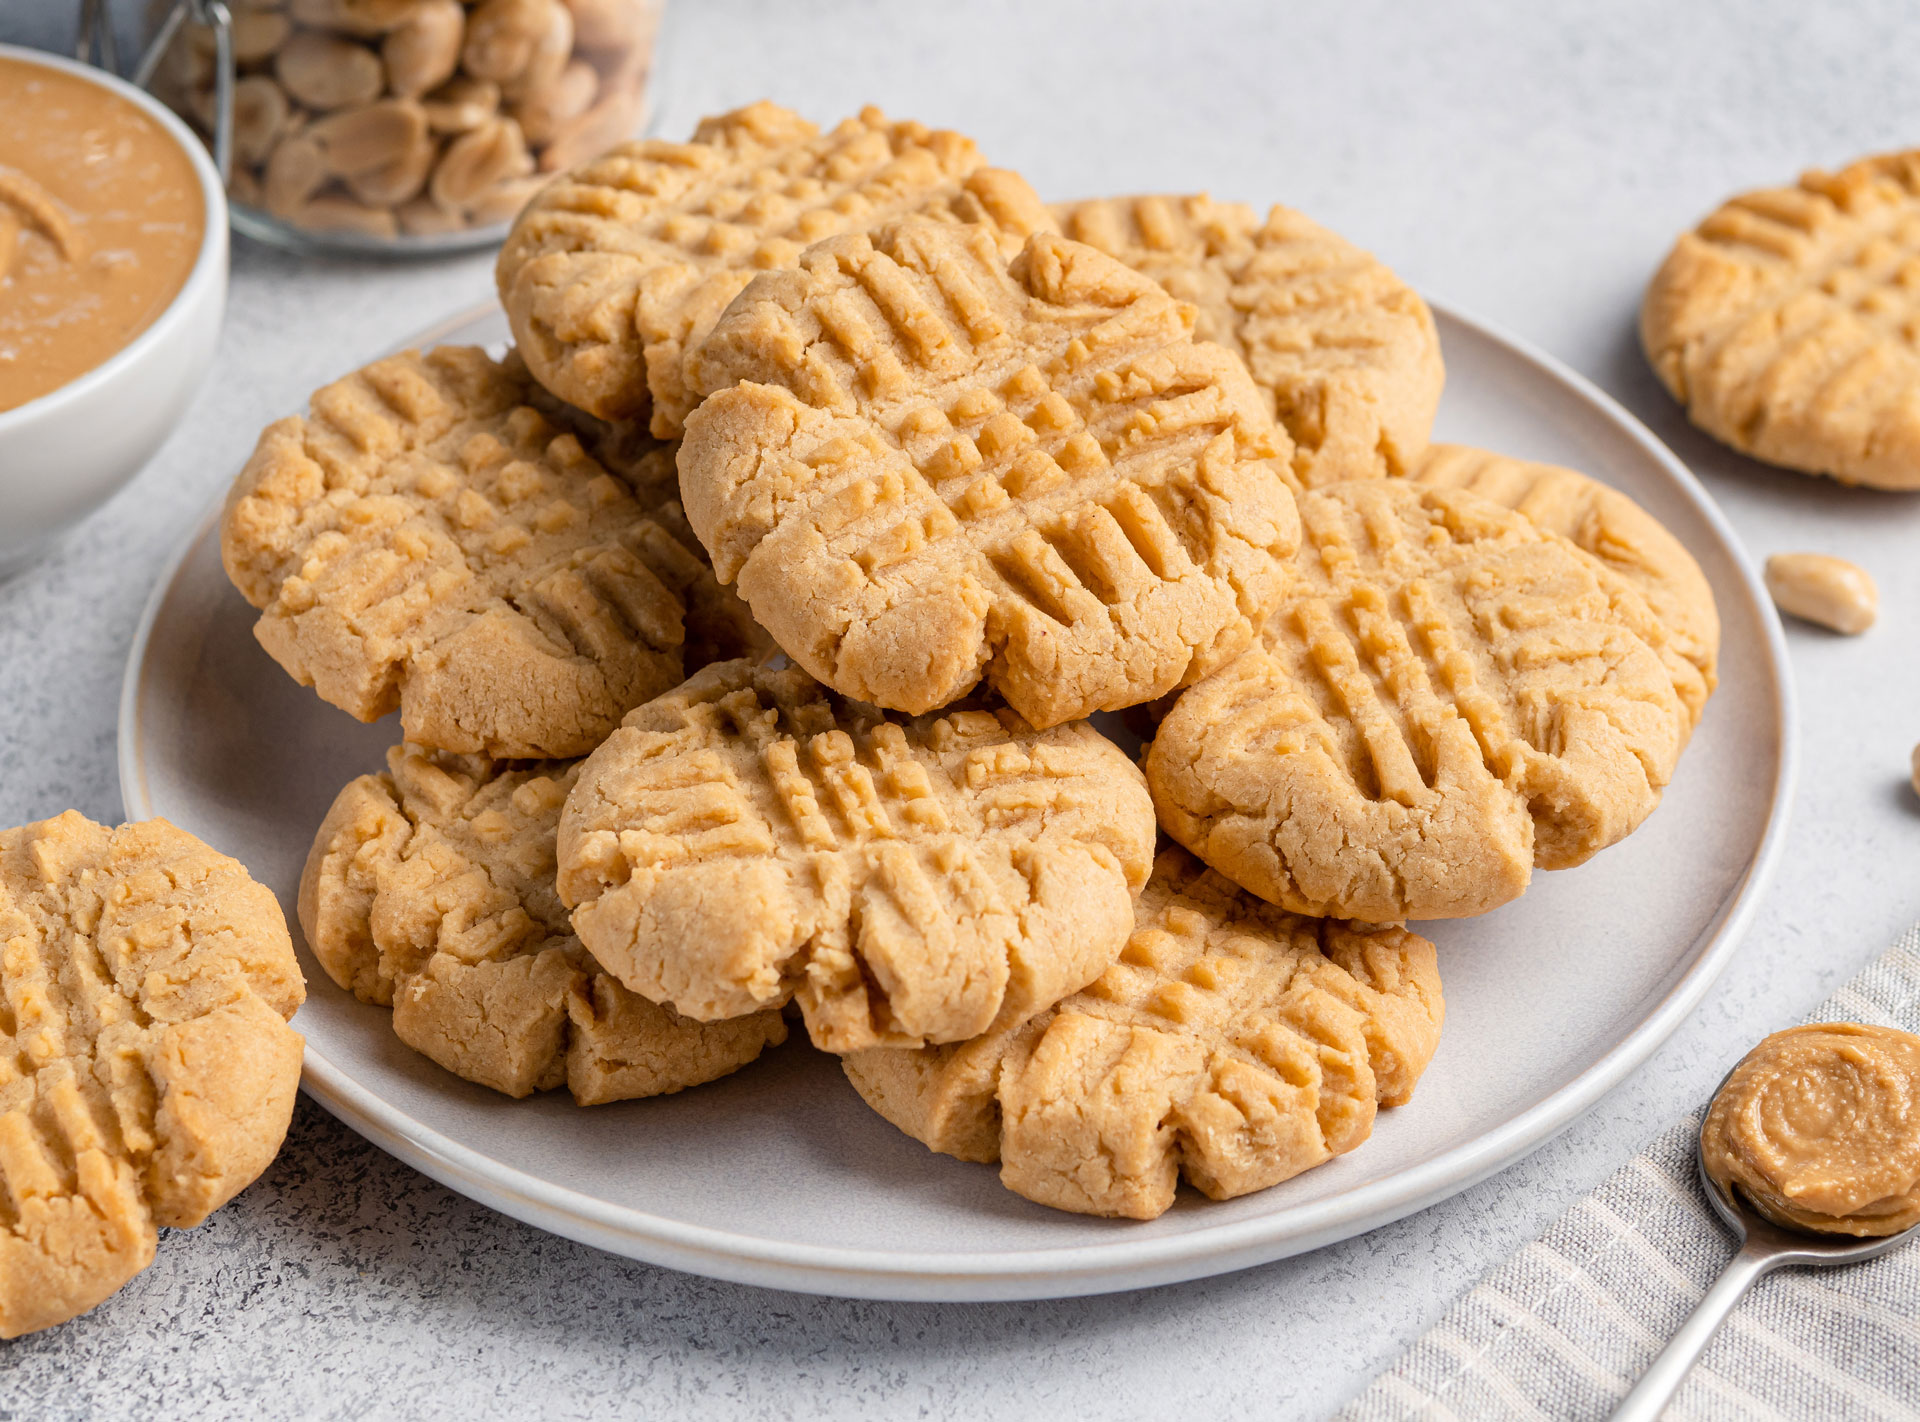 Old Fashioned Peanut Butter Cookies using Swerve